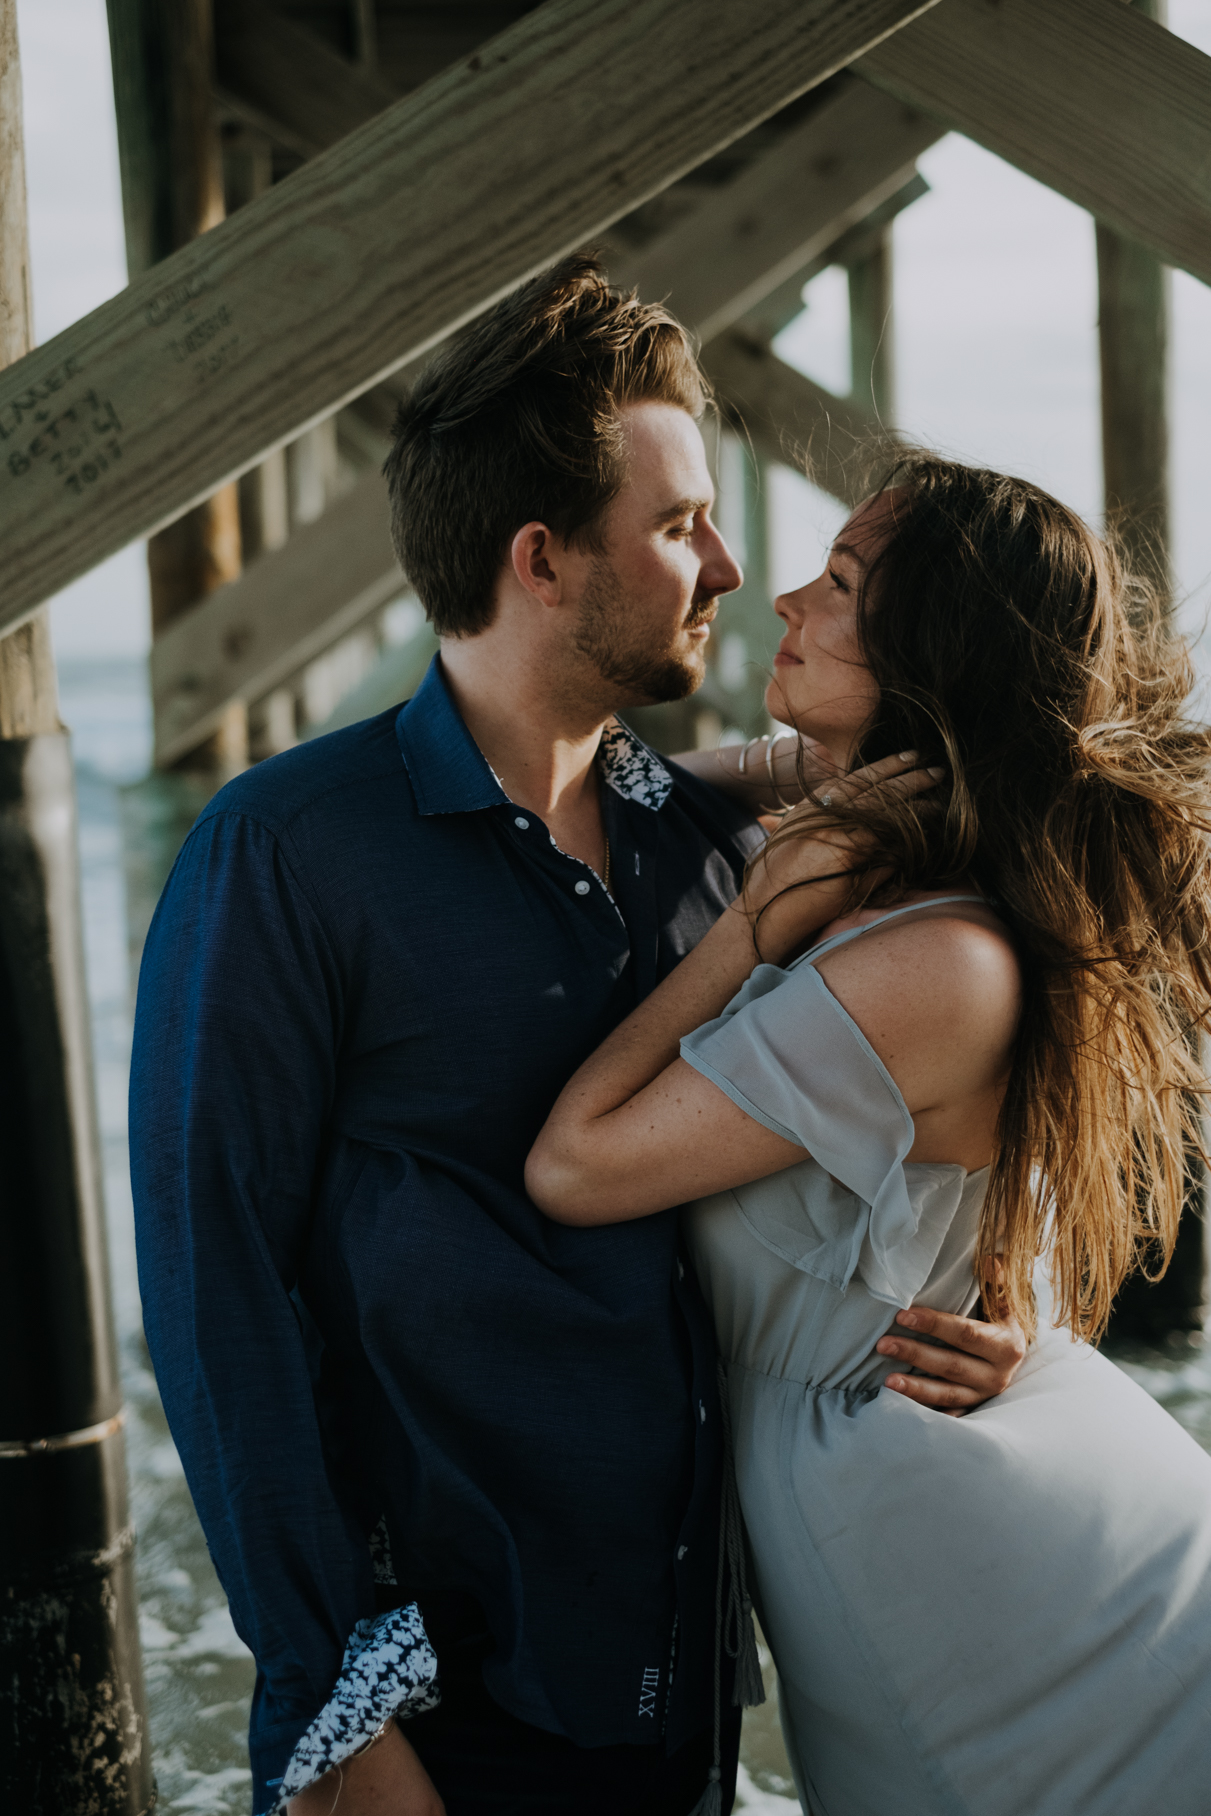 claire + cole | st petersburg engagement | tampa wedding photography and film